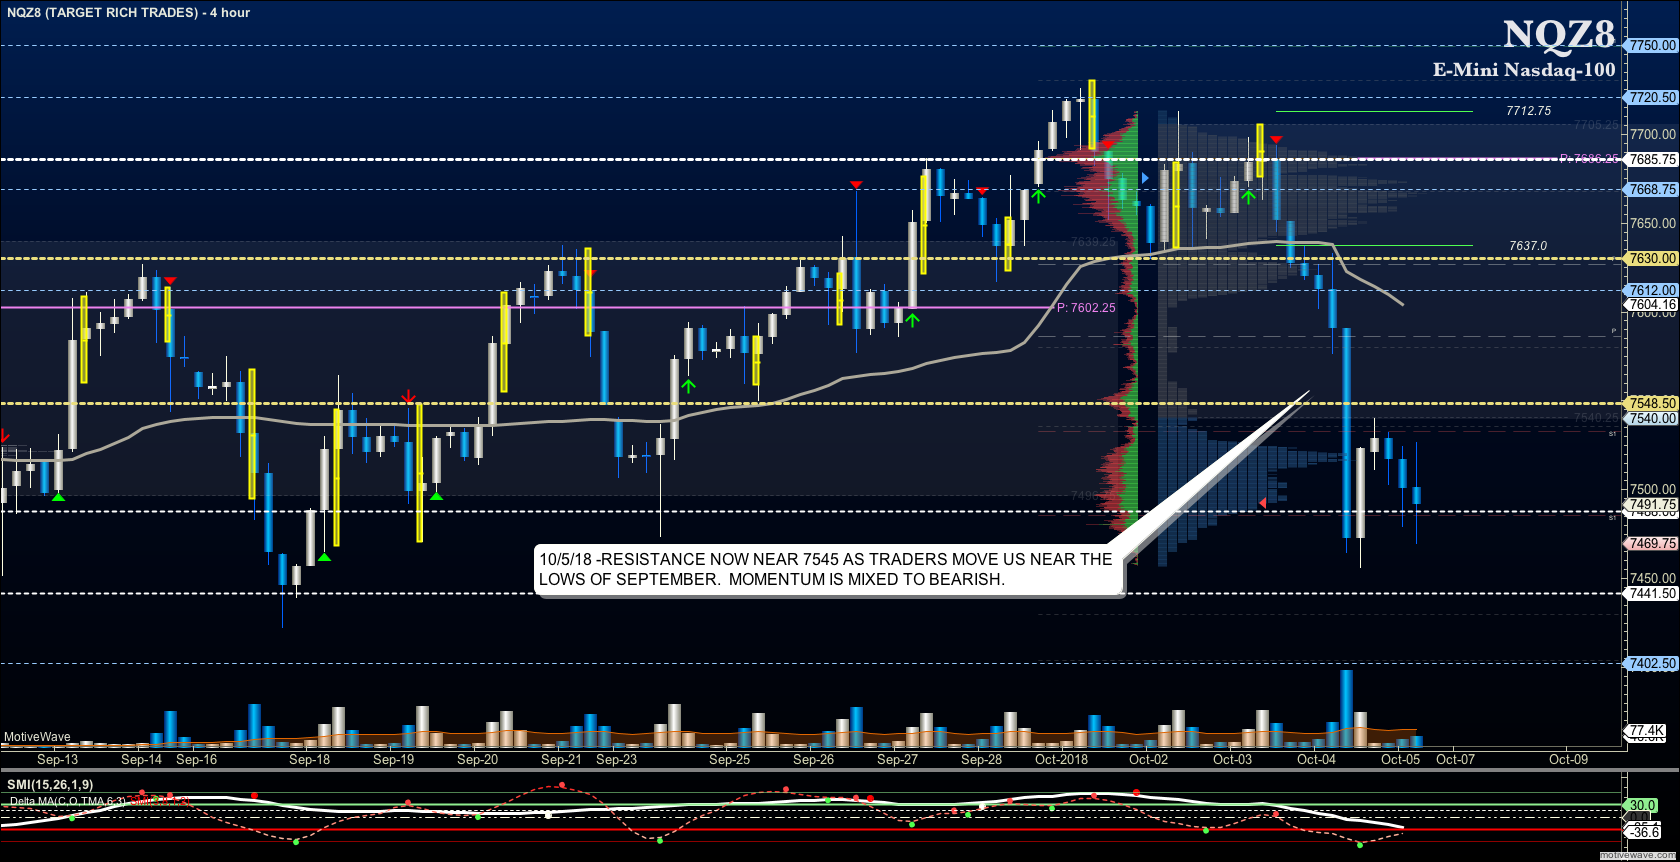 nasdaq futures trading analysis october 5 price targets chart